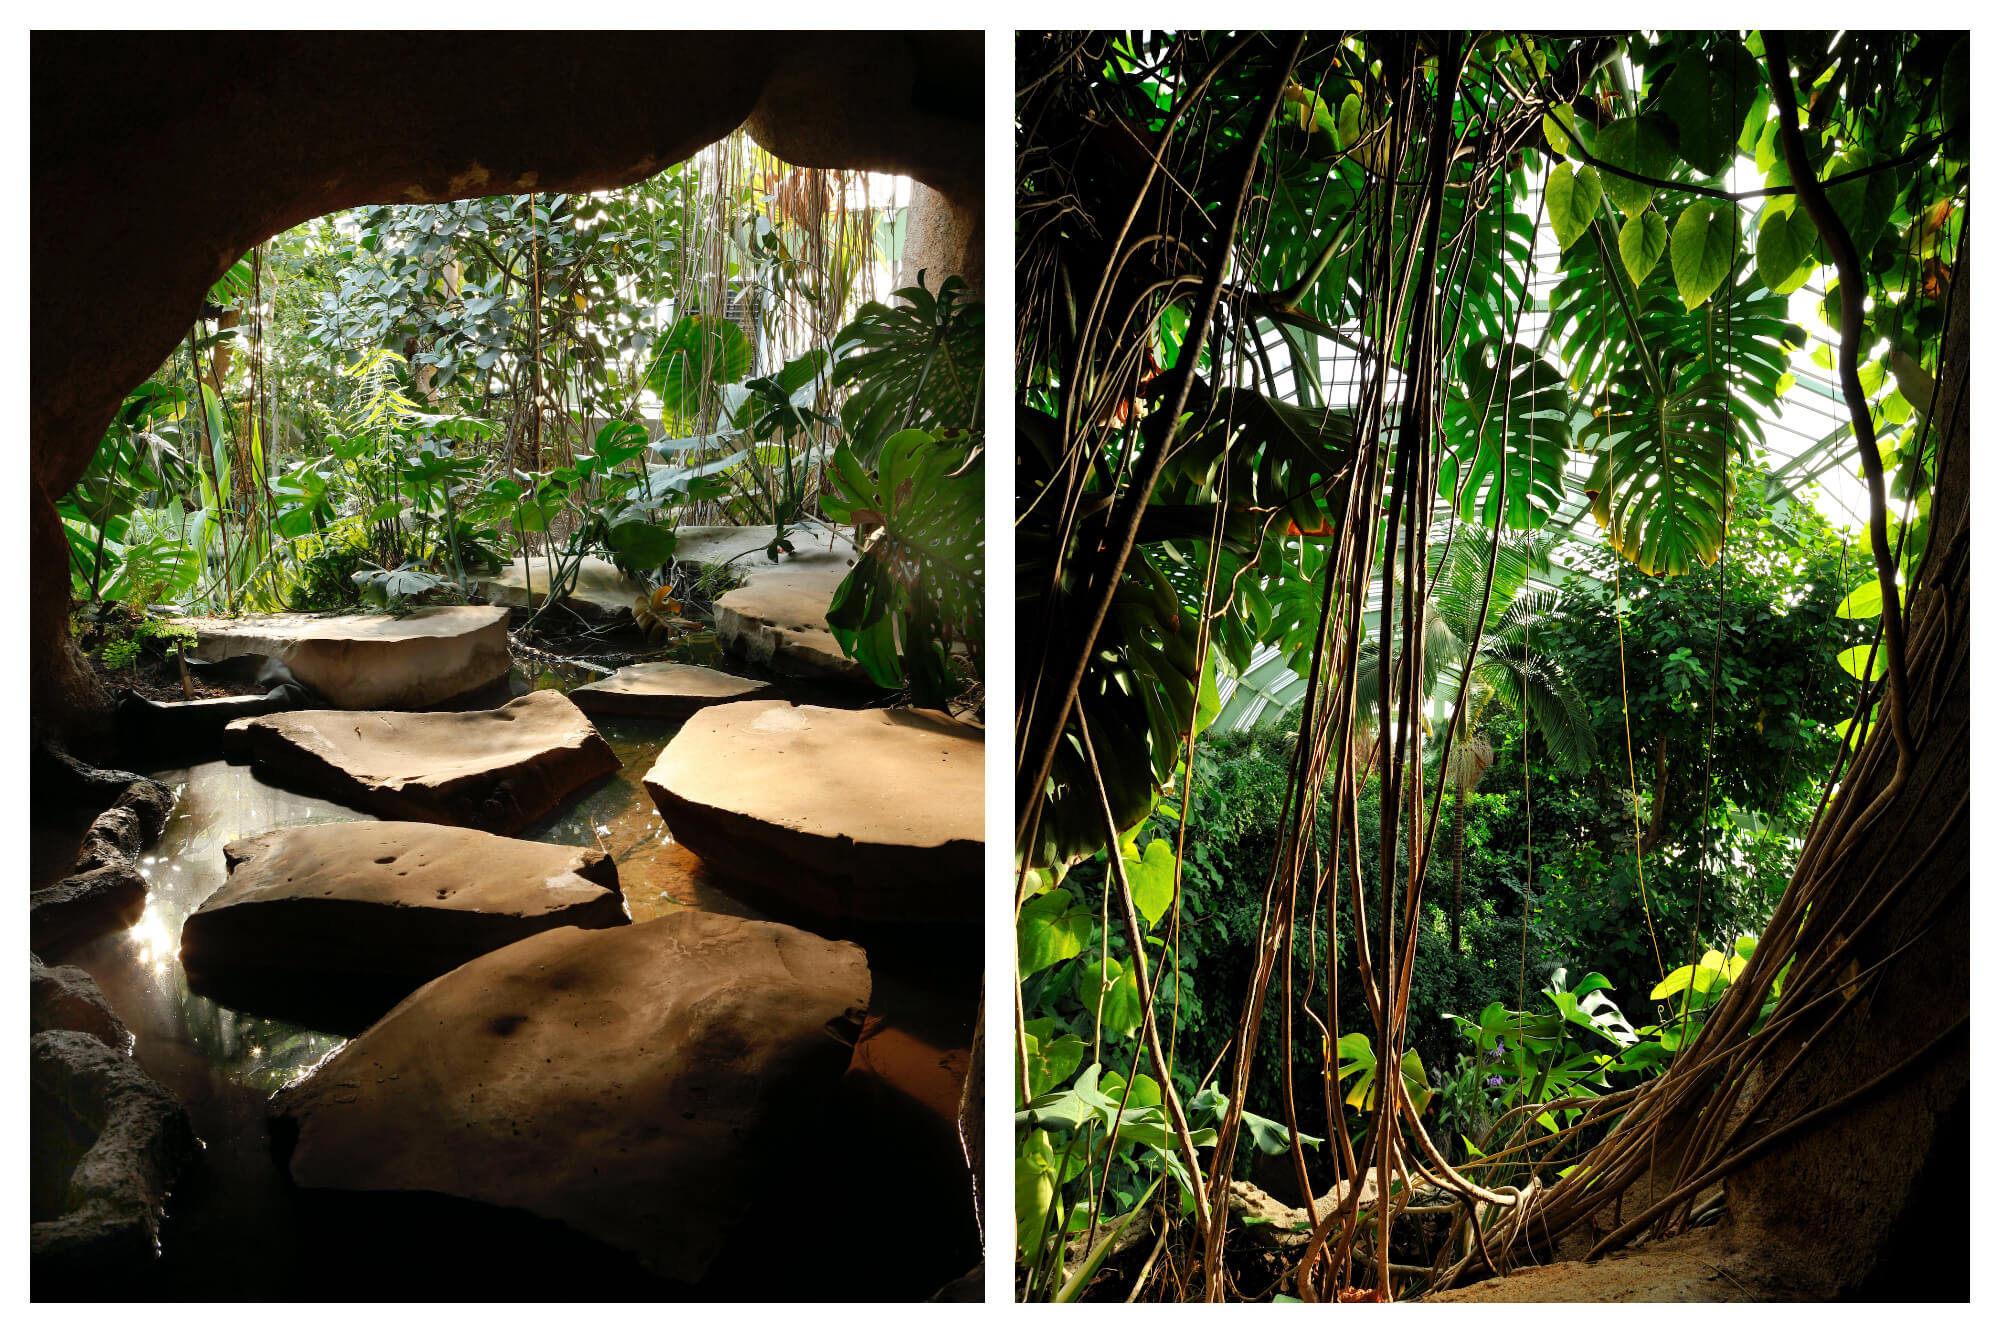 On left: Stepping stones zig-zag their way out of a cavern at the Grandes Serres du Jardin des Plantes, a botanical garden in Paris' Latin Quarter. On right: leafy palms catch the light in the greenhouse of the Grandes Serres du Jardin des Plantes.